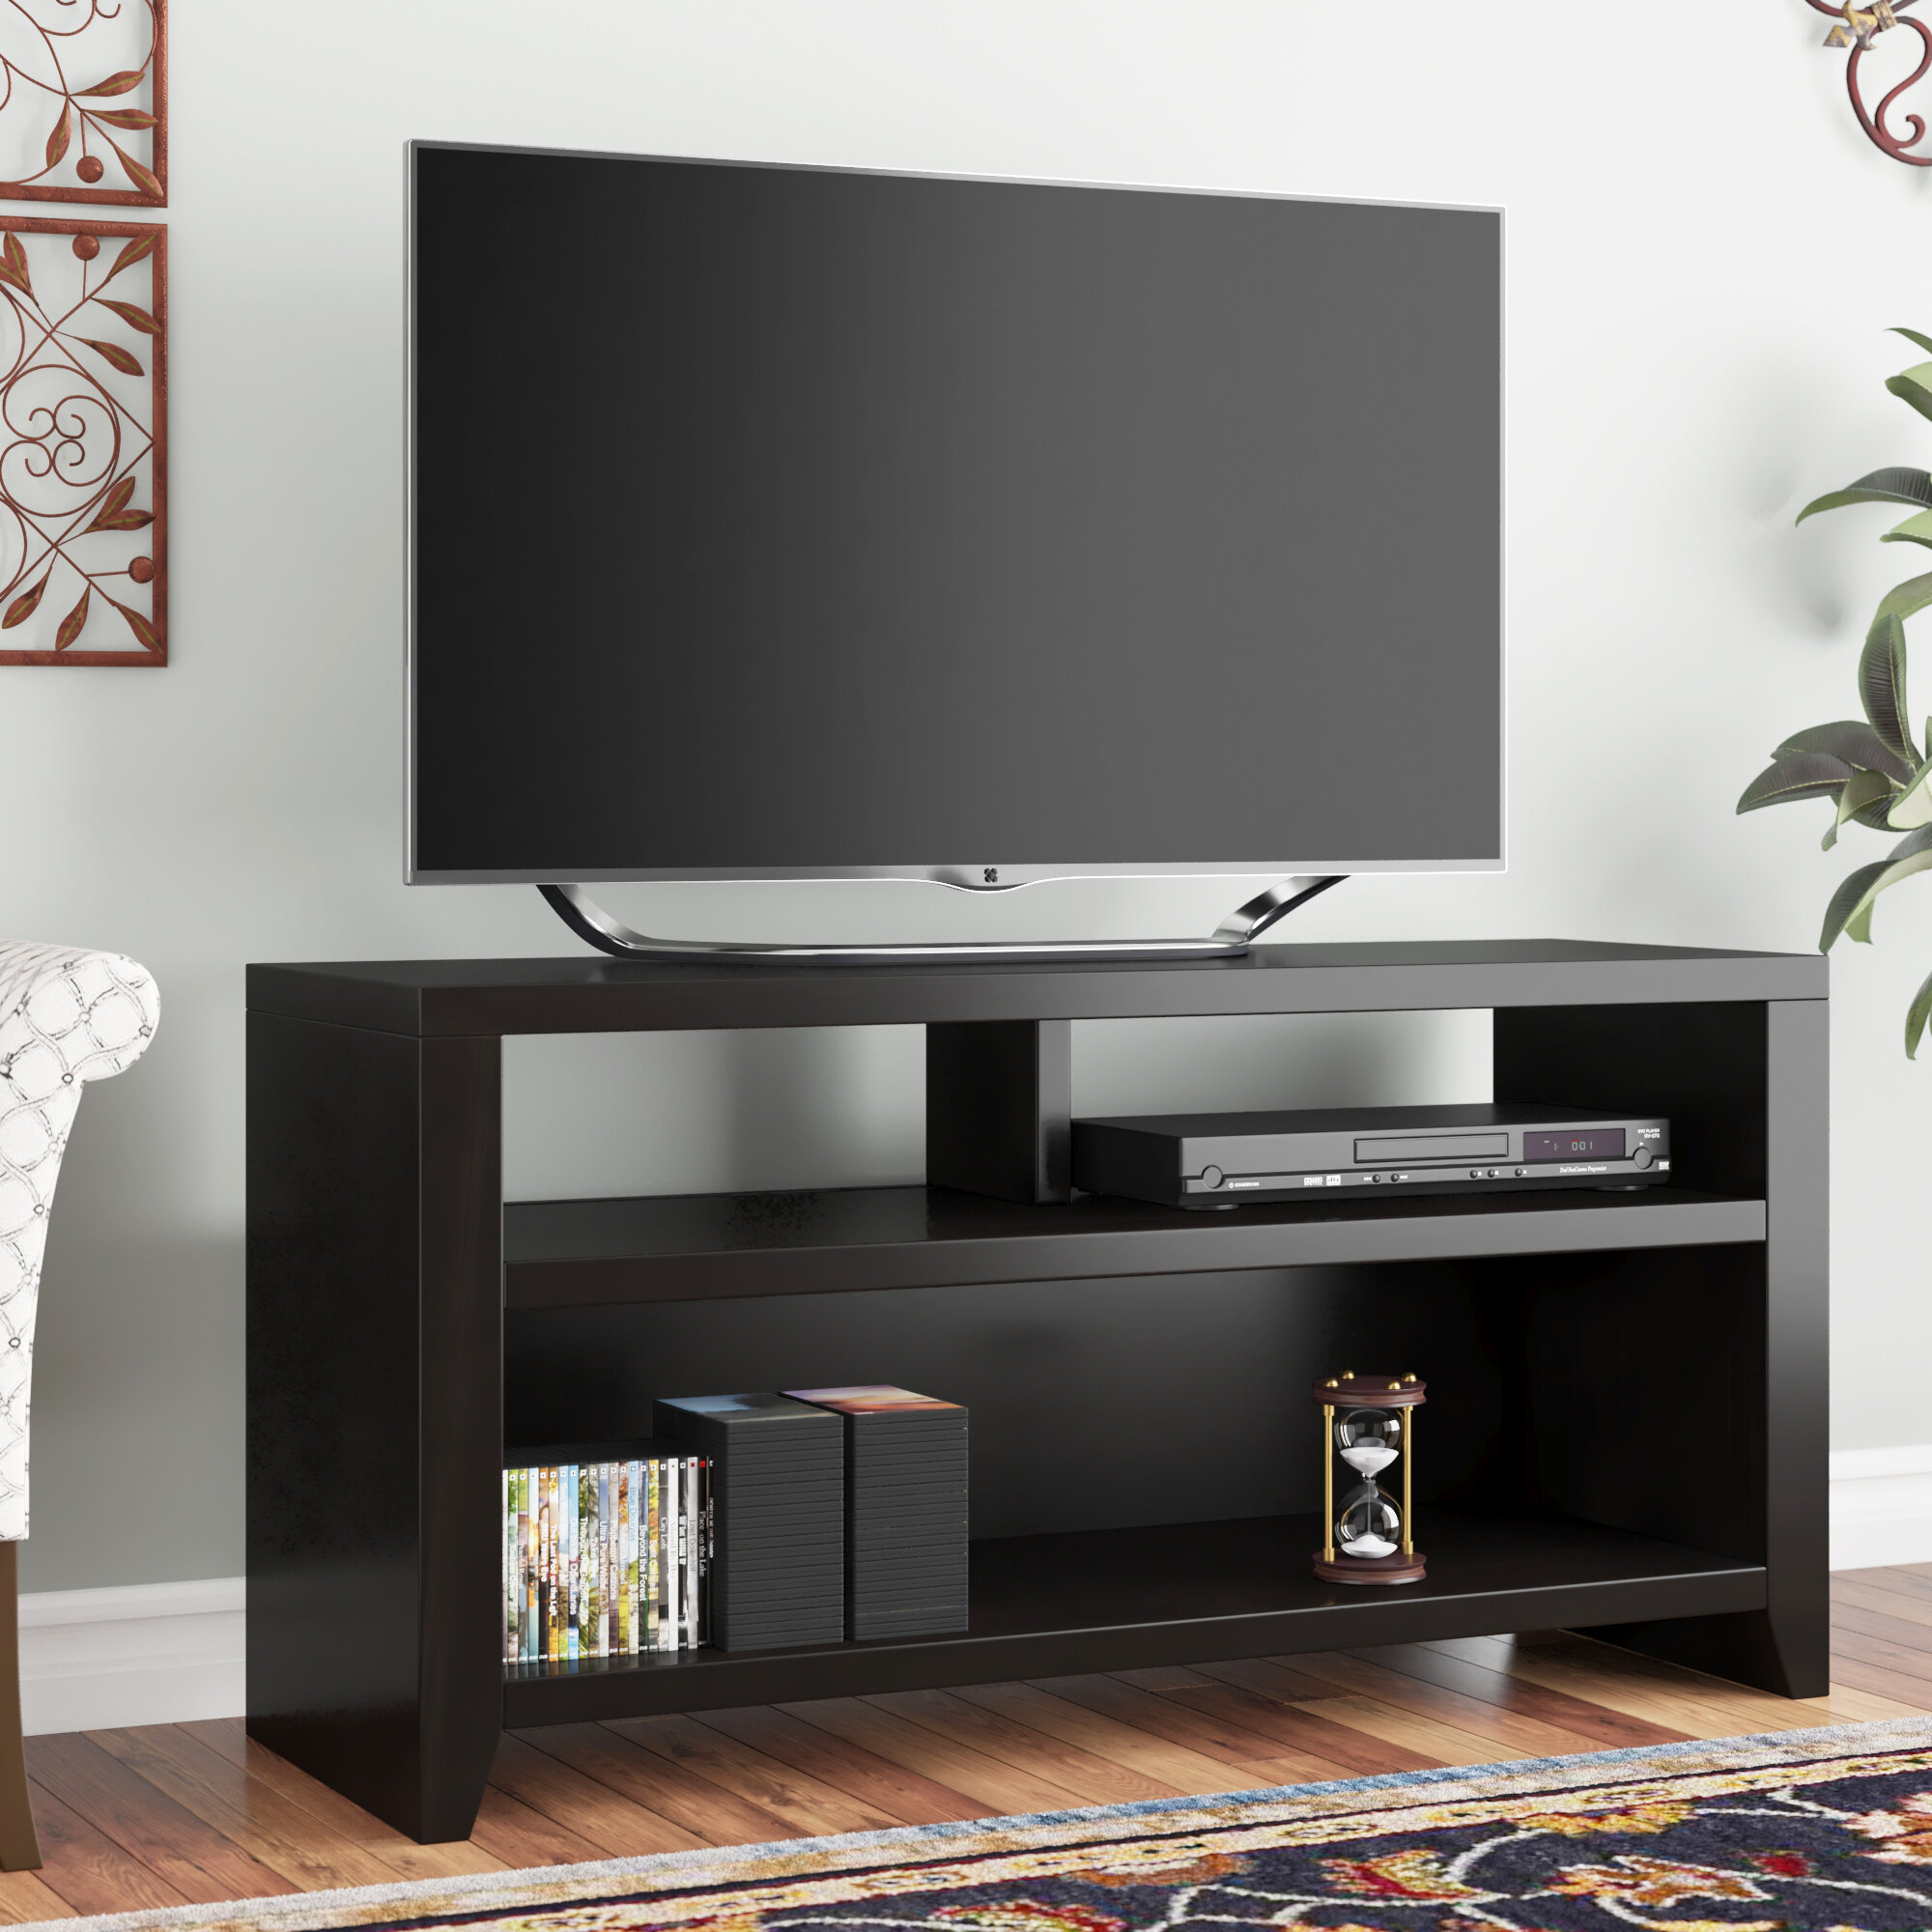 Darby Home Co Garretson Solid Wood Tv Stand For Tvs Up To 55 Reviews Wayfair